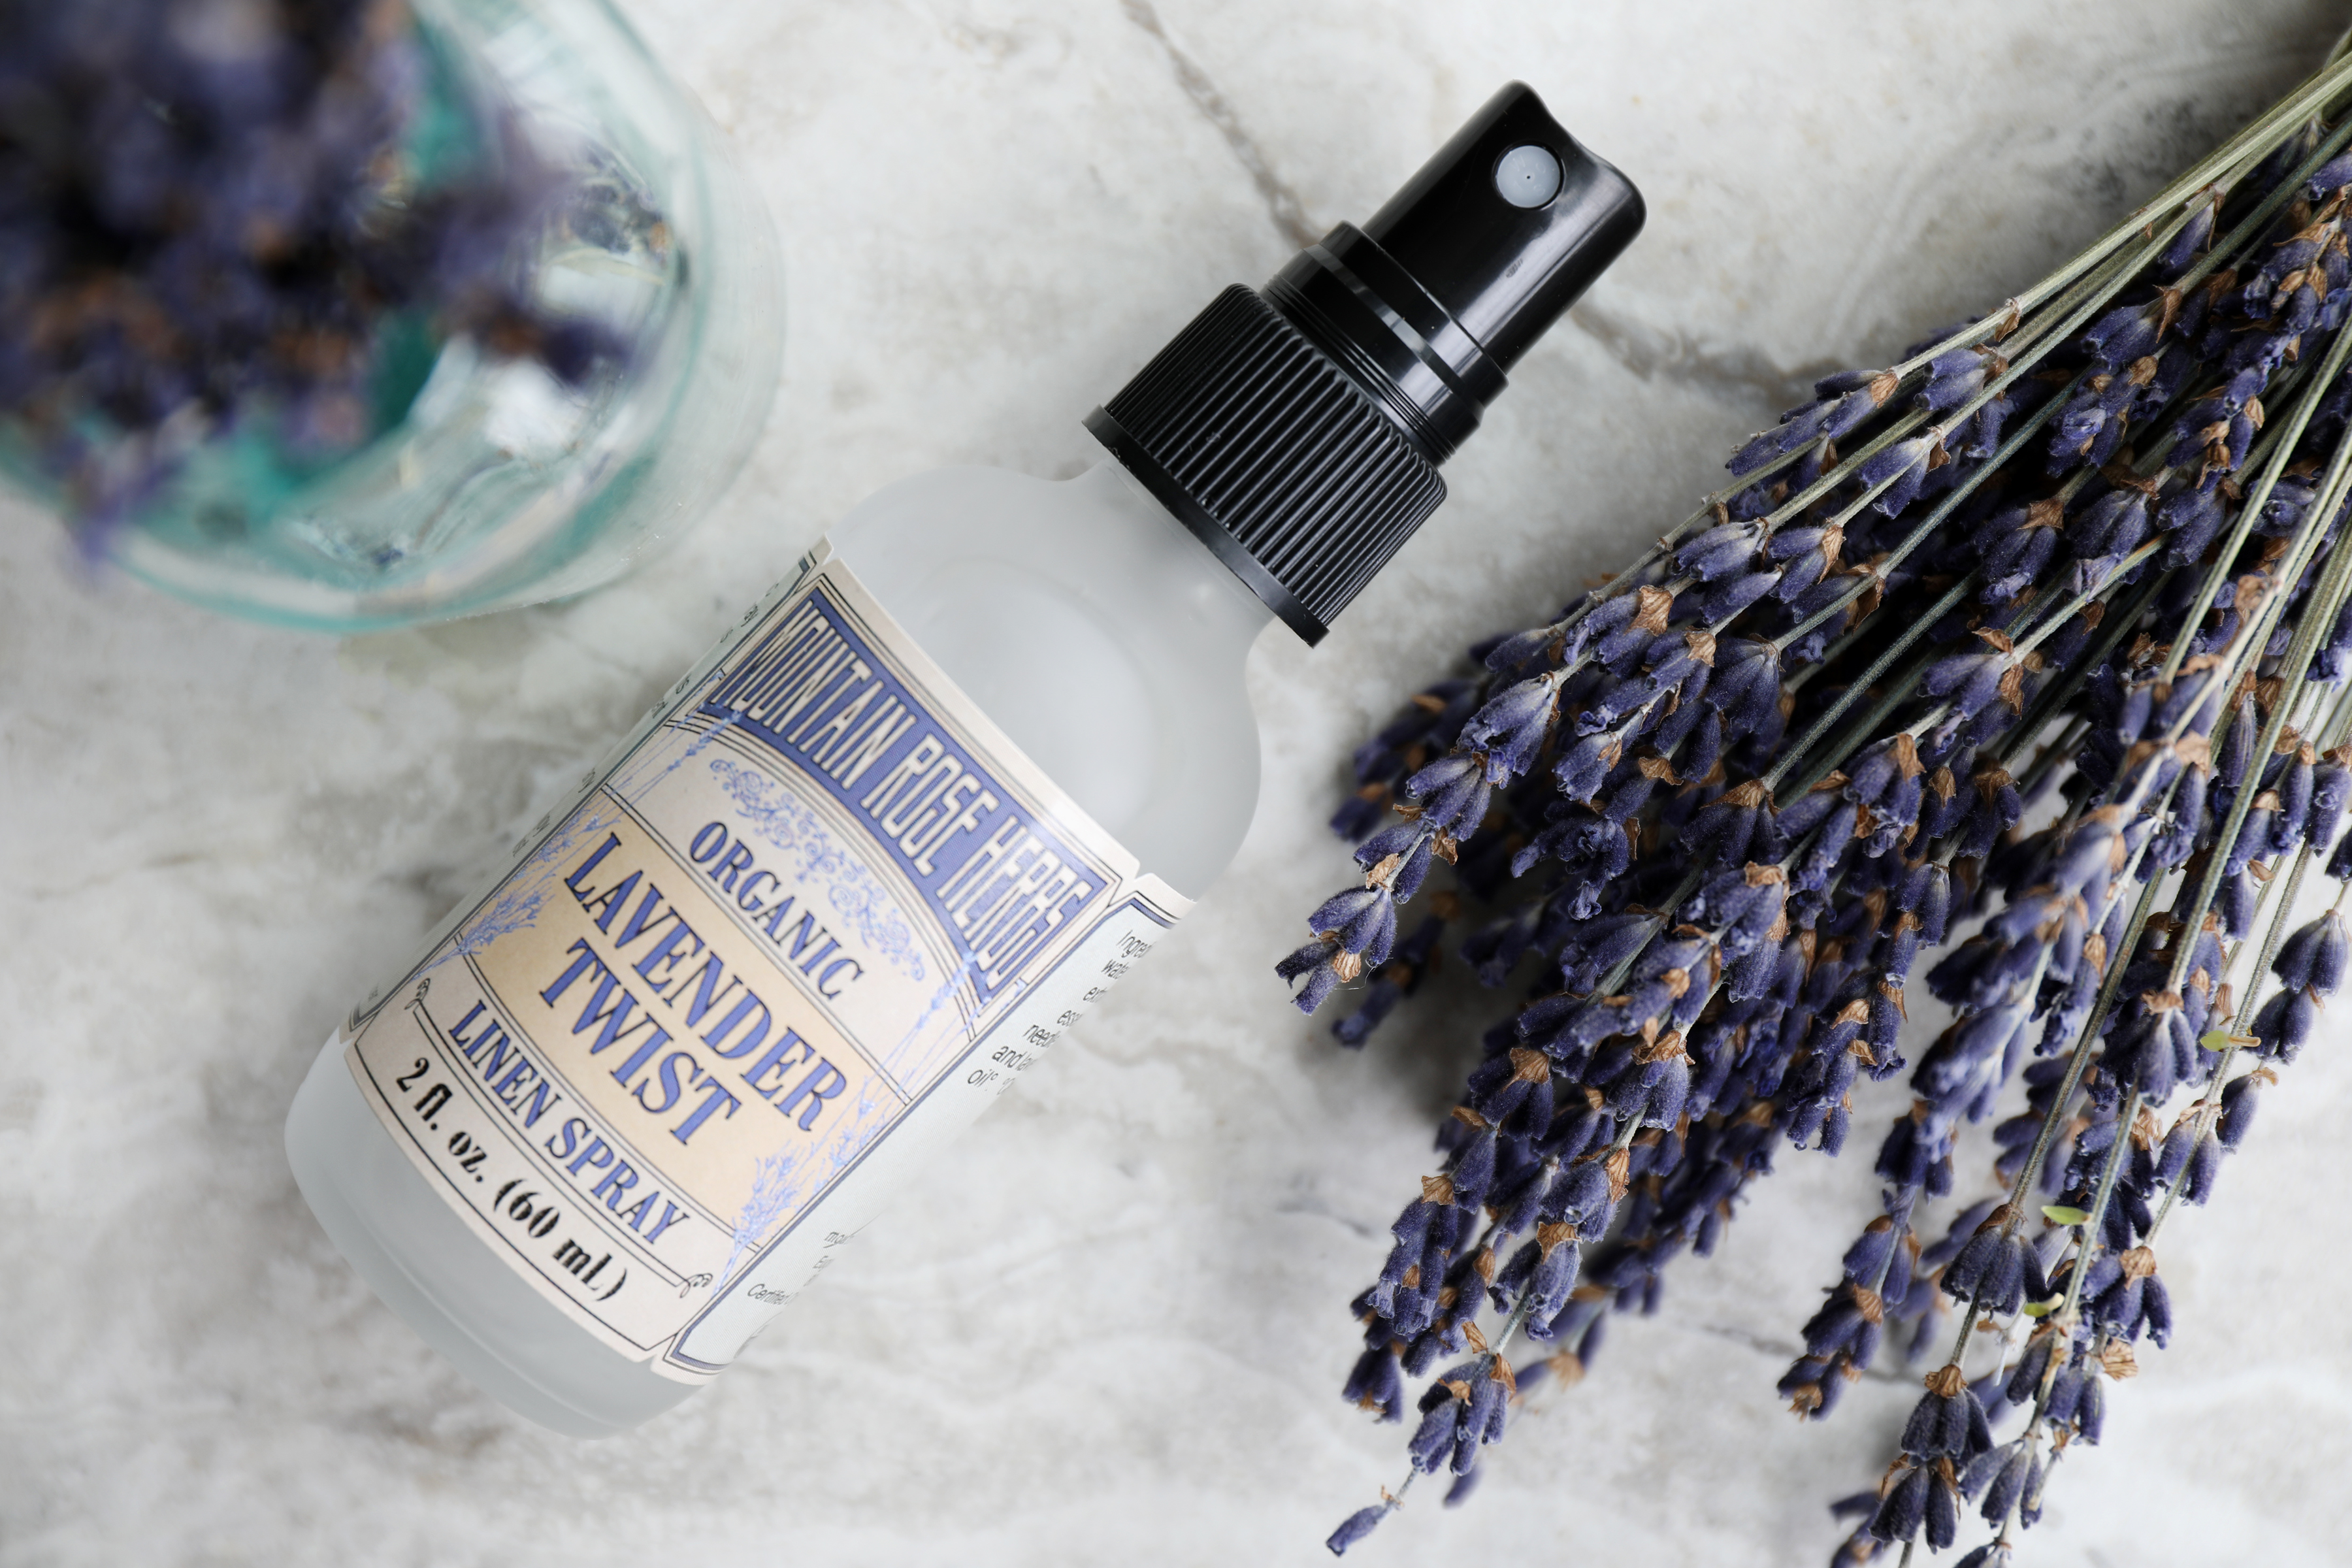 Bottle of Lavender Twist Aroma Spray with fresh sprigs of Lavender flowers.